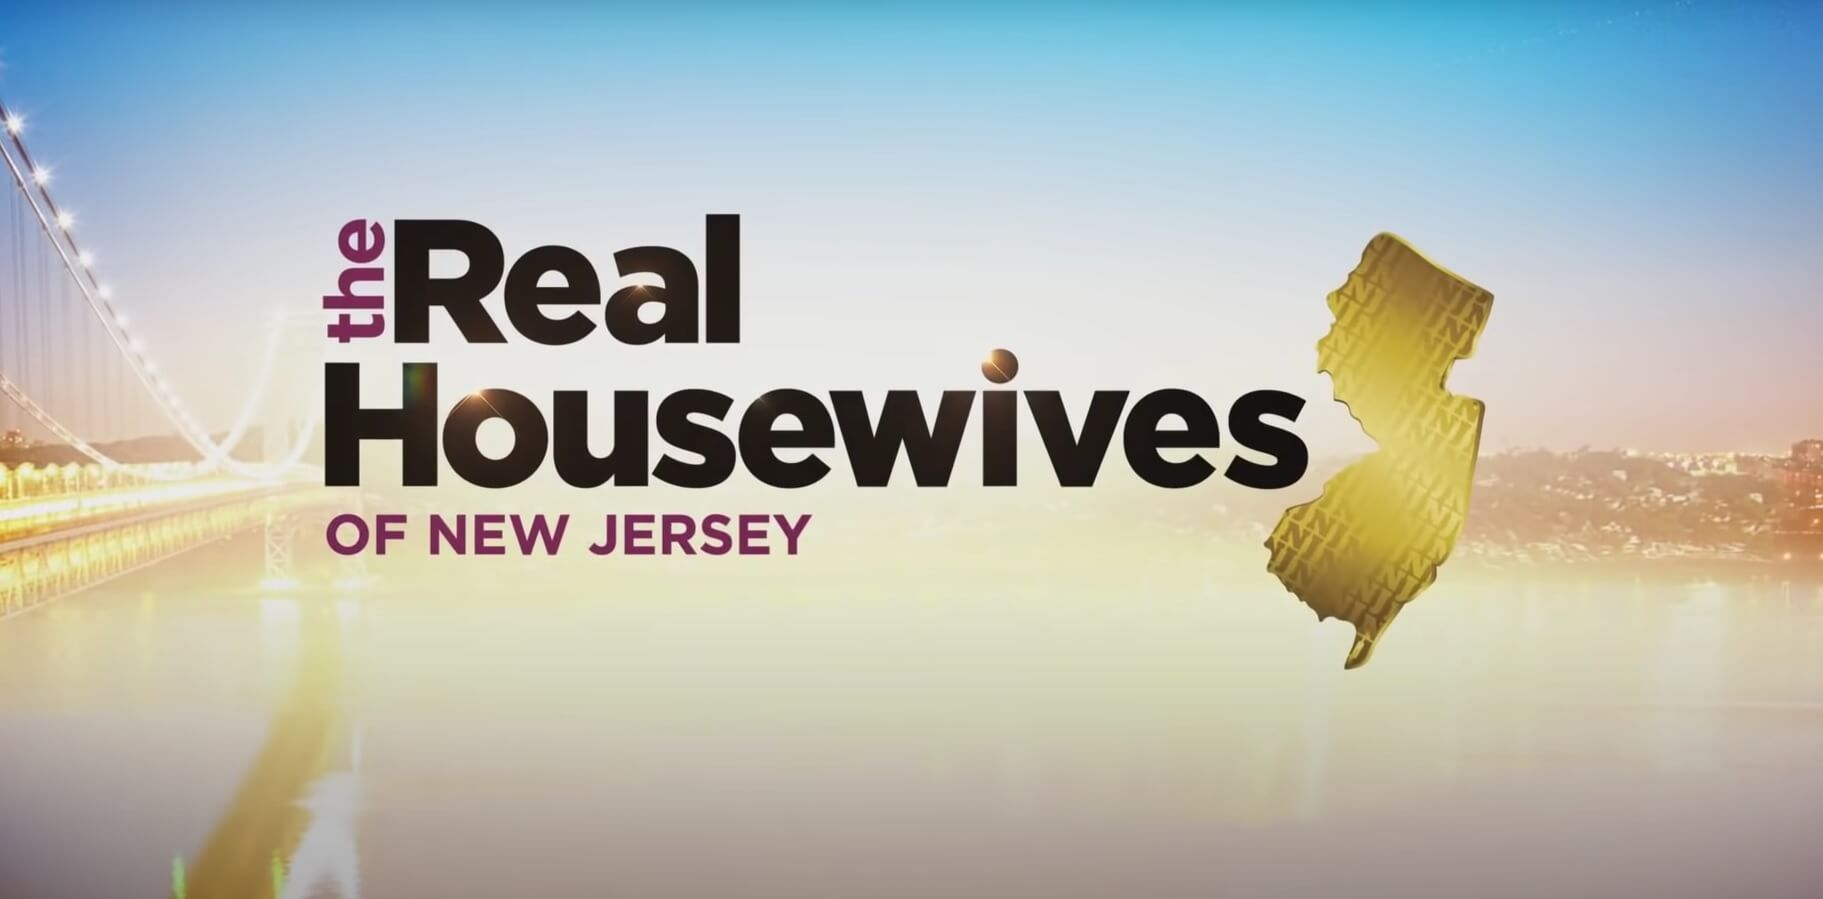 The Real Housewives of New Jersey Season 11- Bravo's hottest reality TV show today